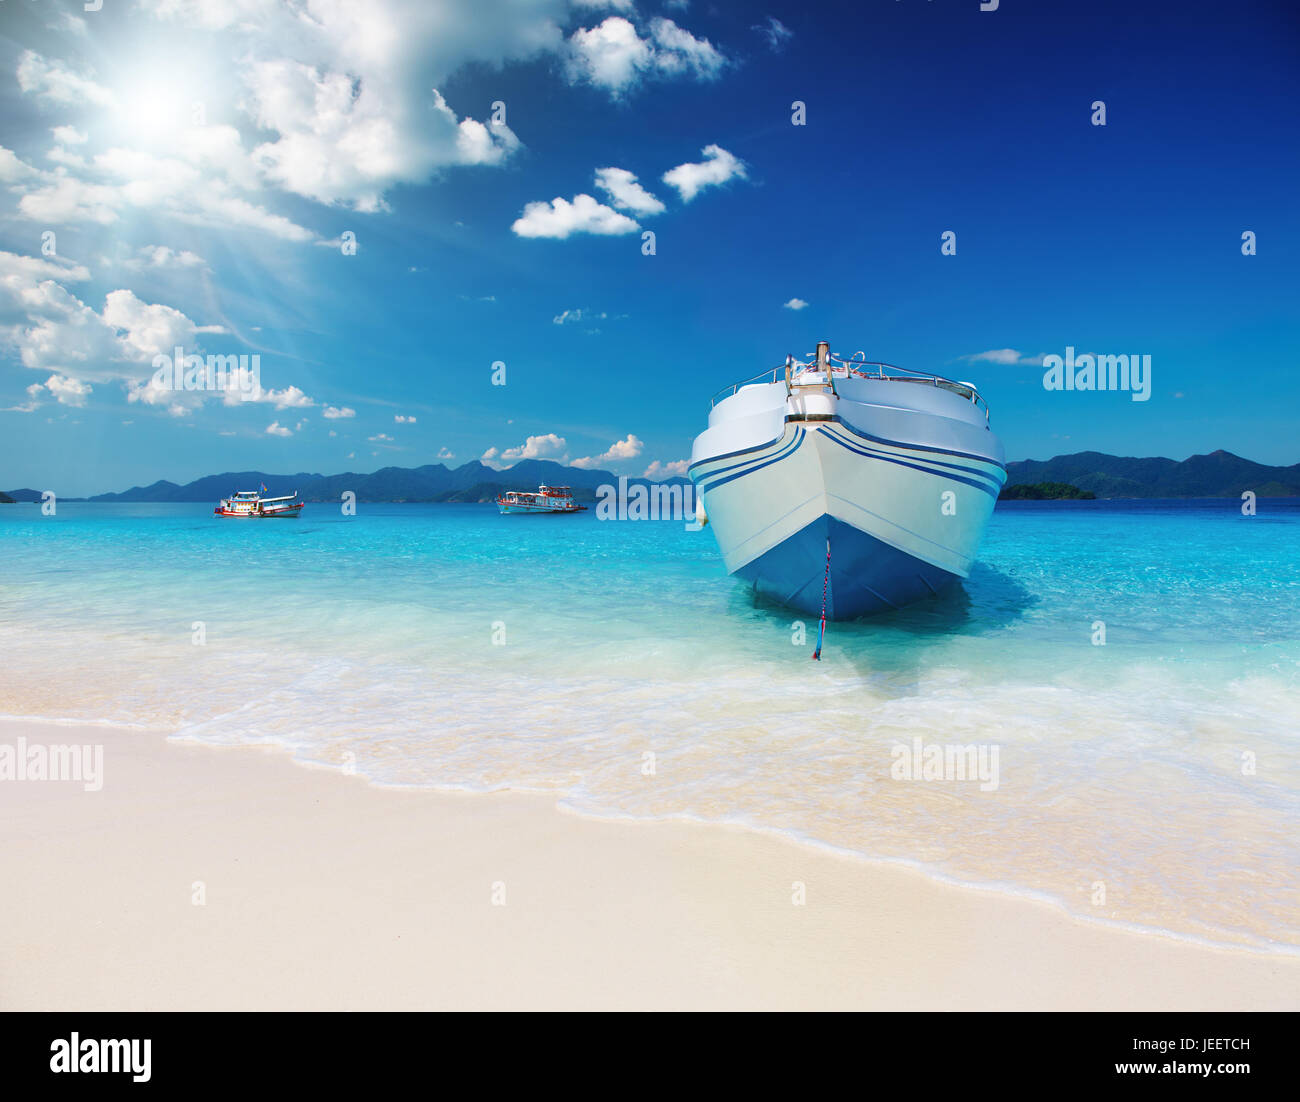 Tropical beach with white sand and azure sea - Stock Image